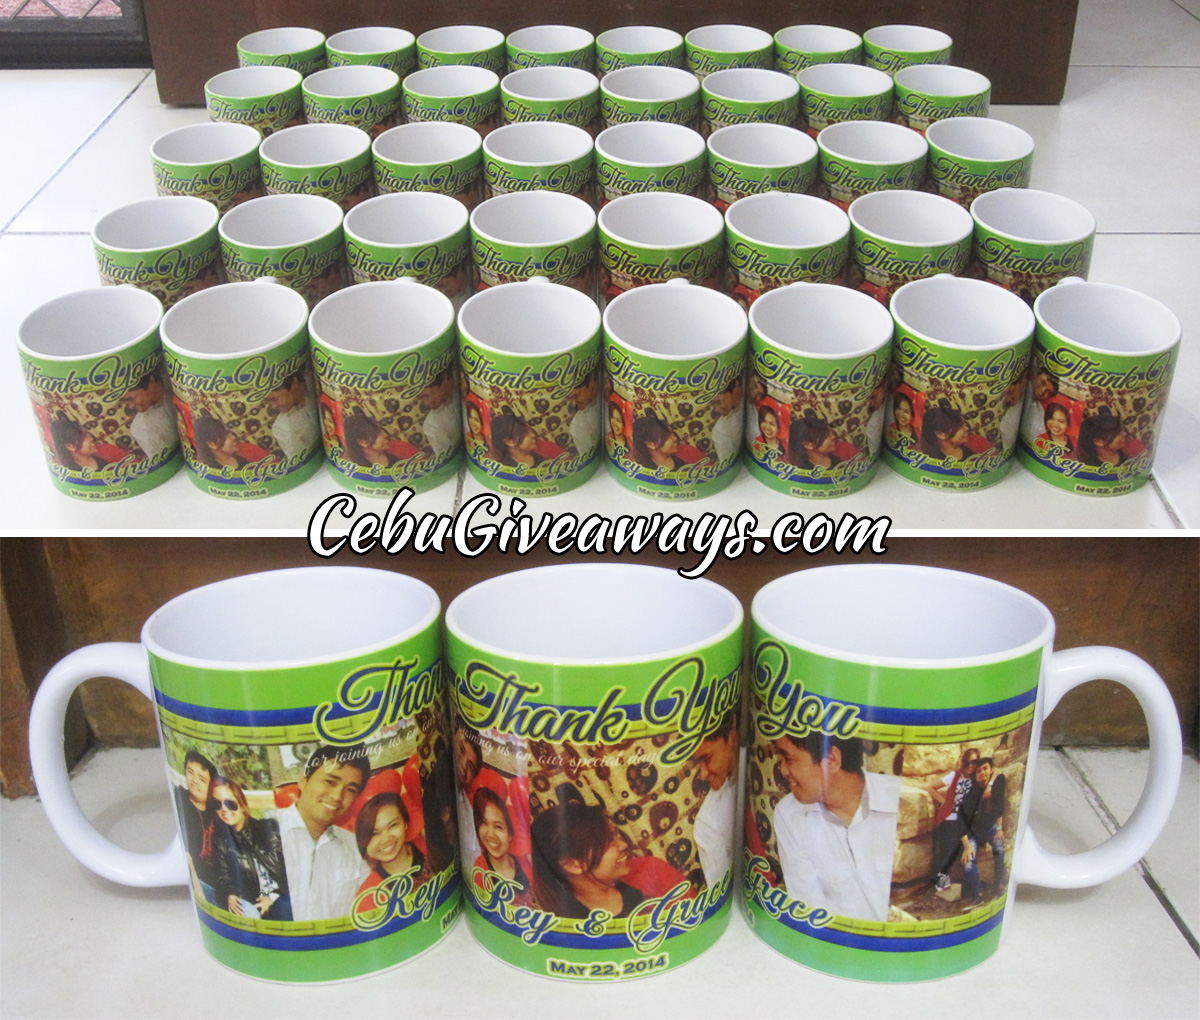 mugs cebu giveaways personalized items party souvenirs